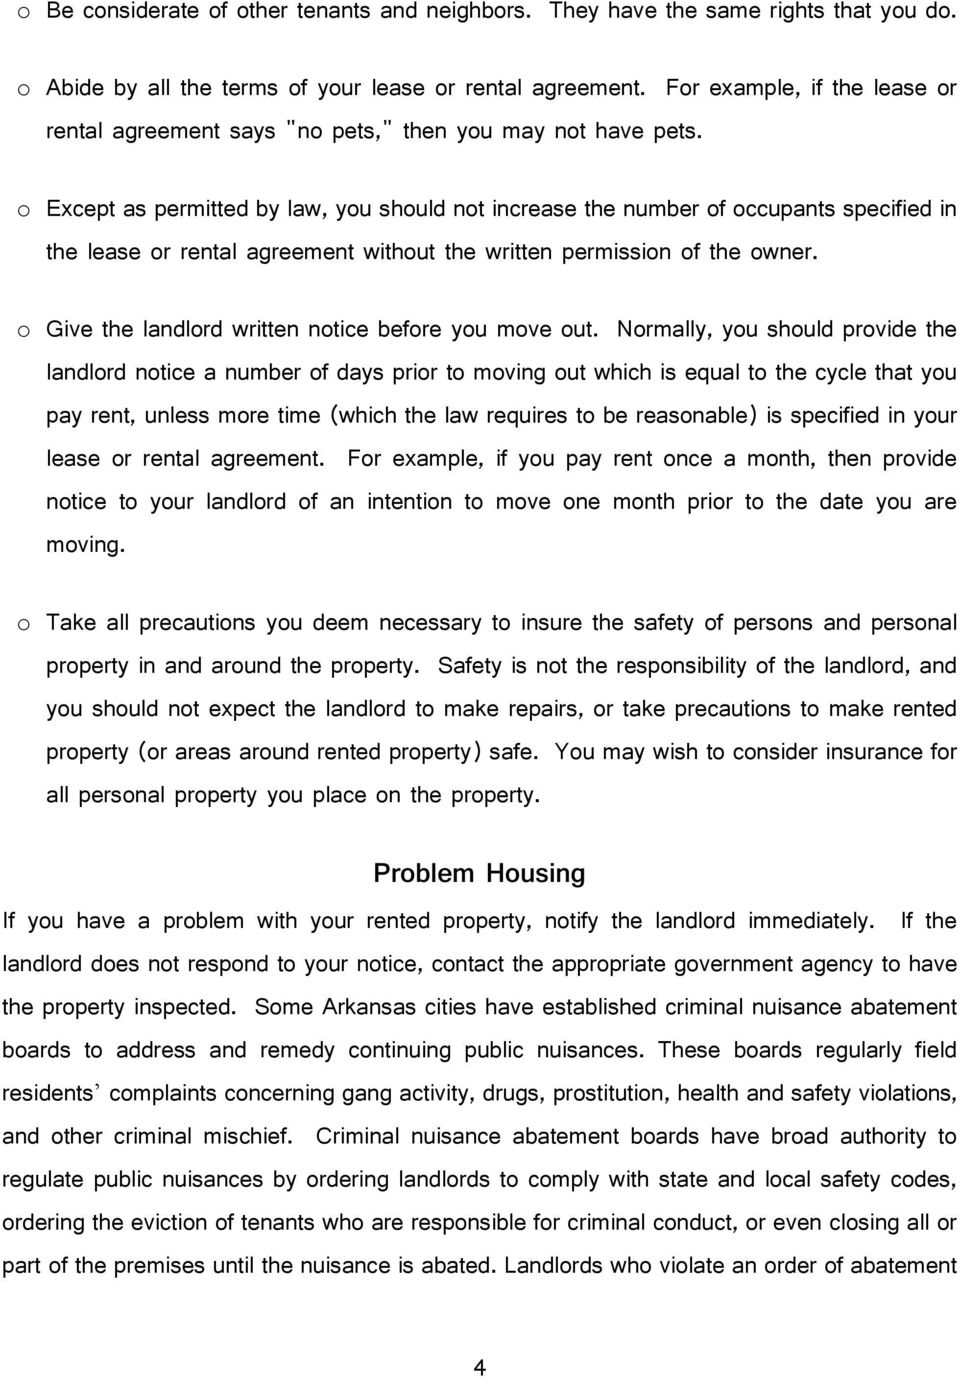 o Except as permitted by law, you should not increase the number of occupants specified in the lease or rental agreement without the written permission of the owner.